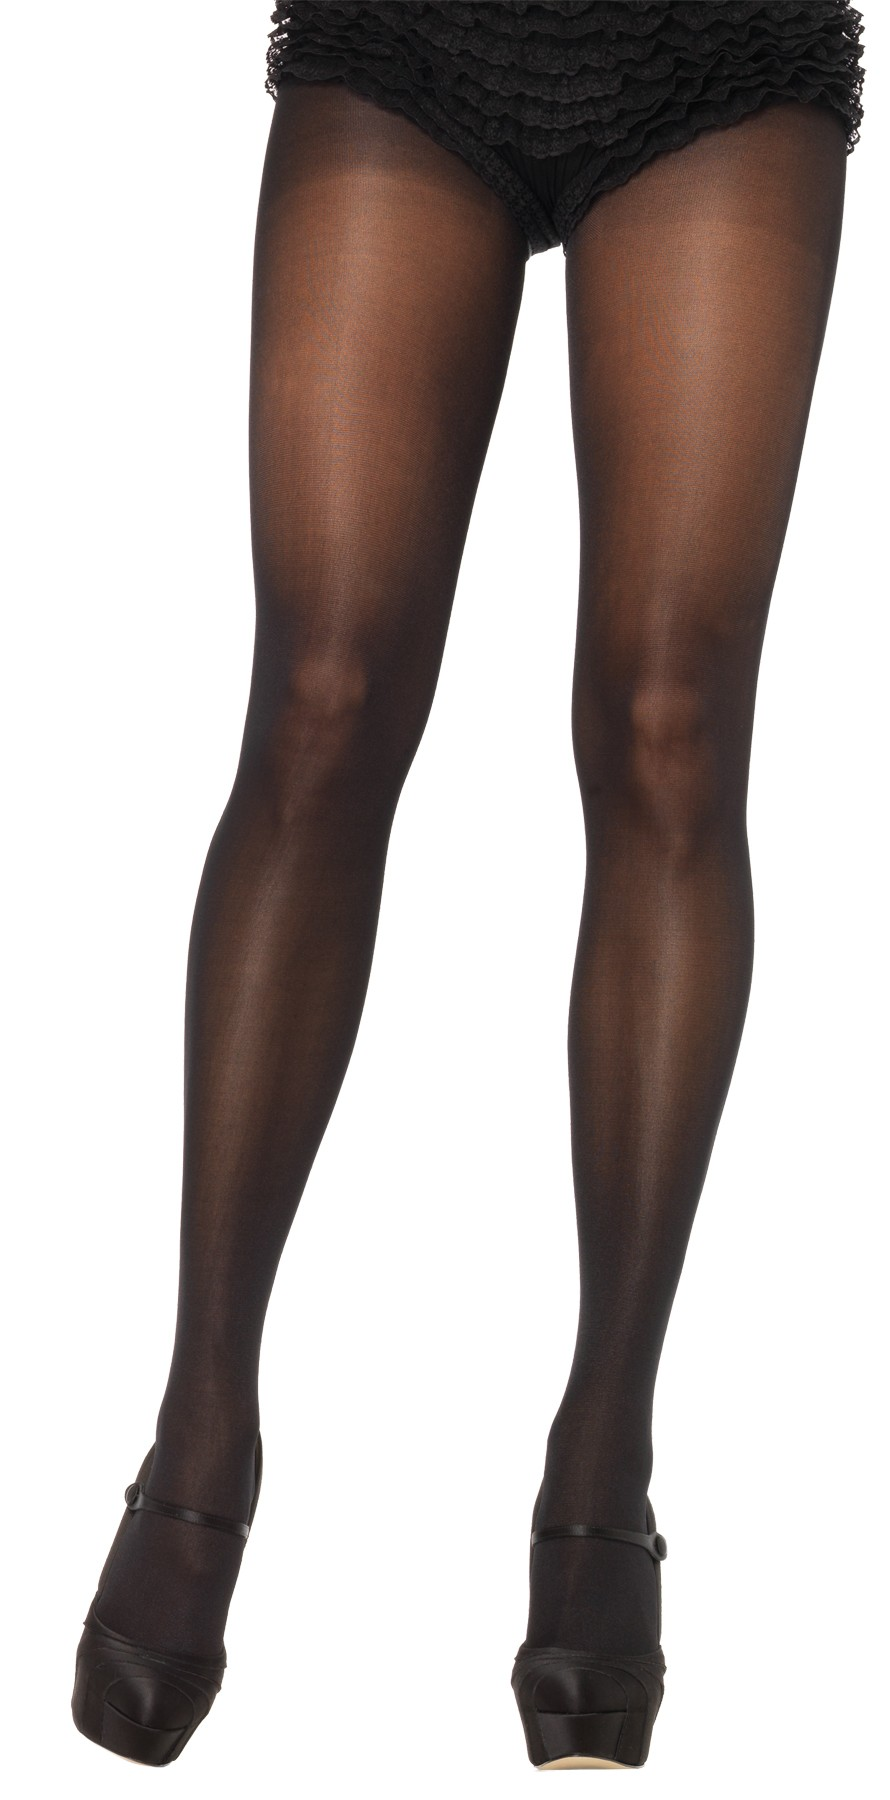 062829d203a Opaque Sheer Waist Black Tights Adult Costume Accessory